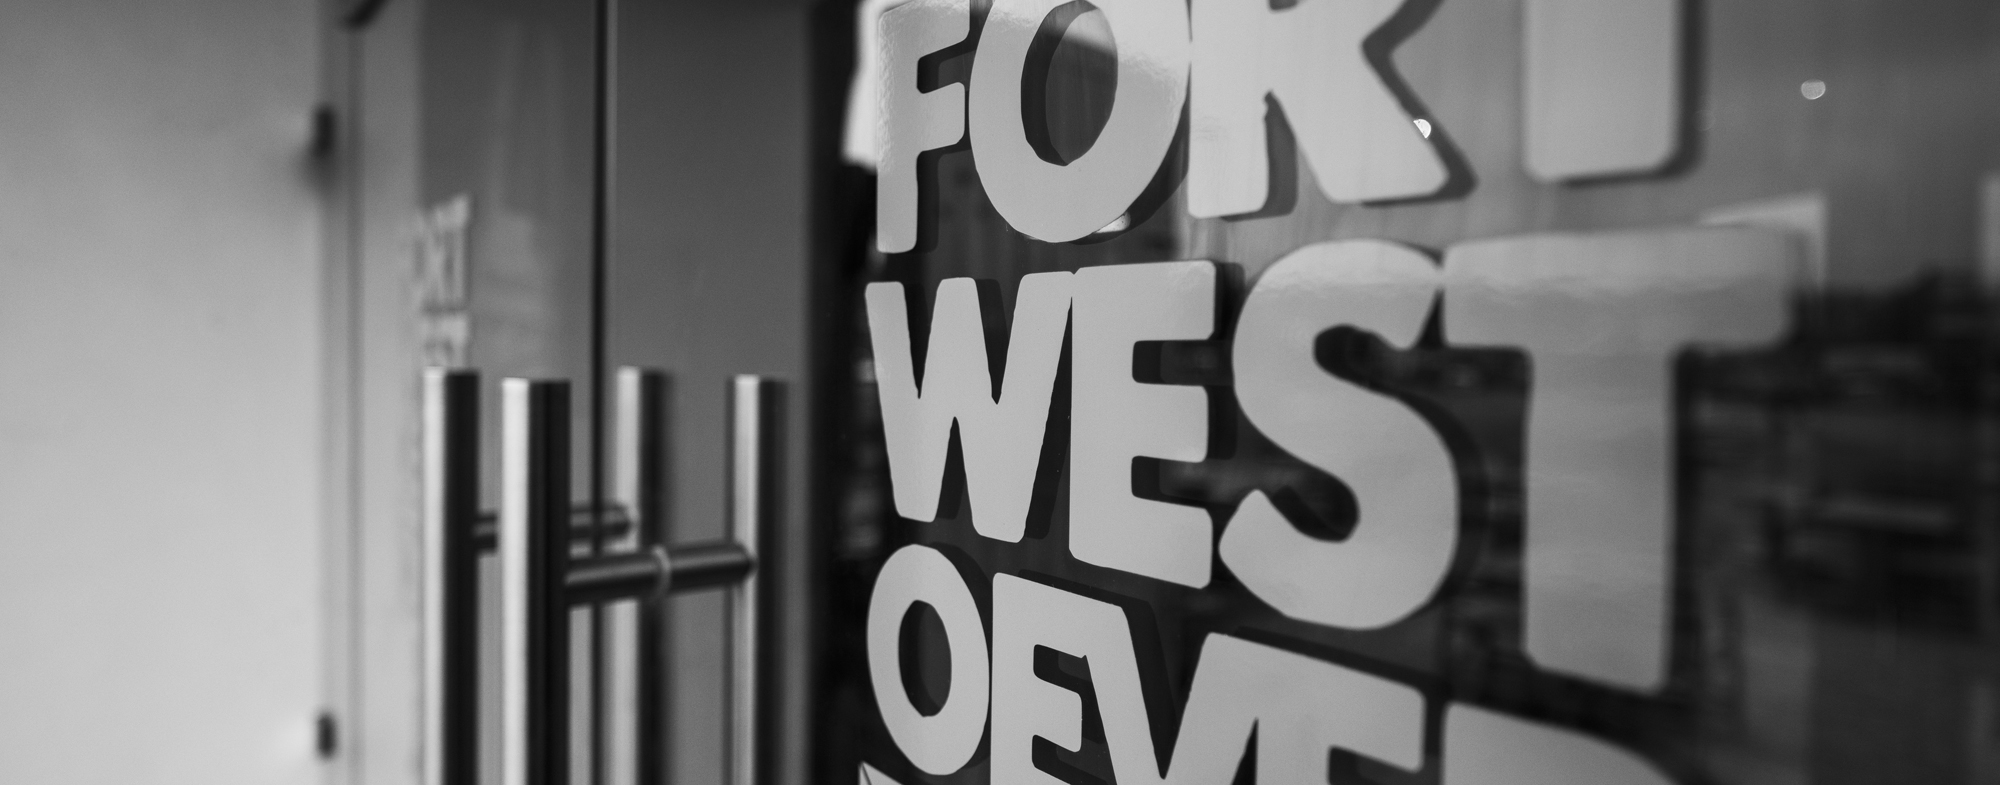 fort west oever studiotwisk